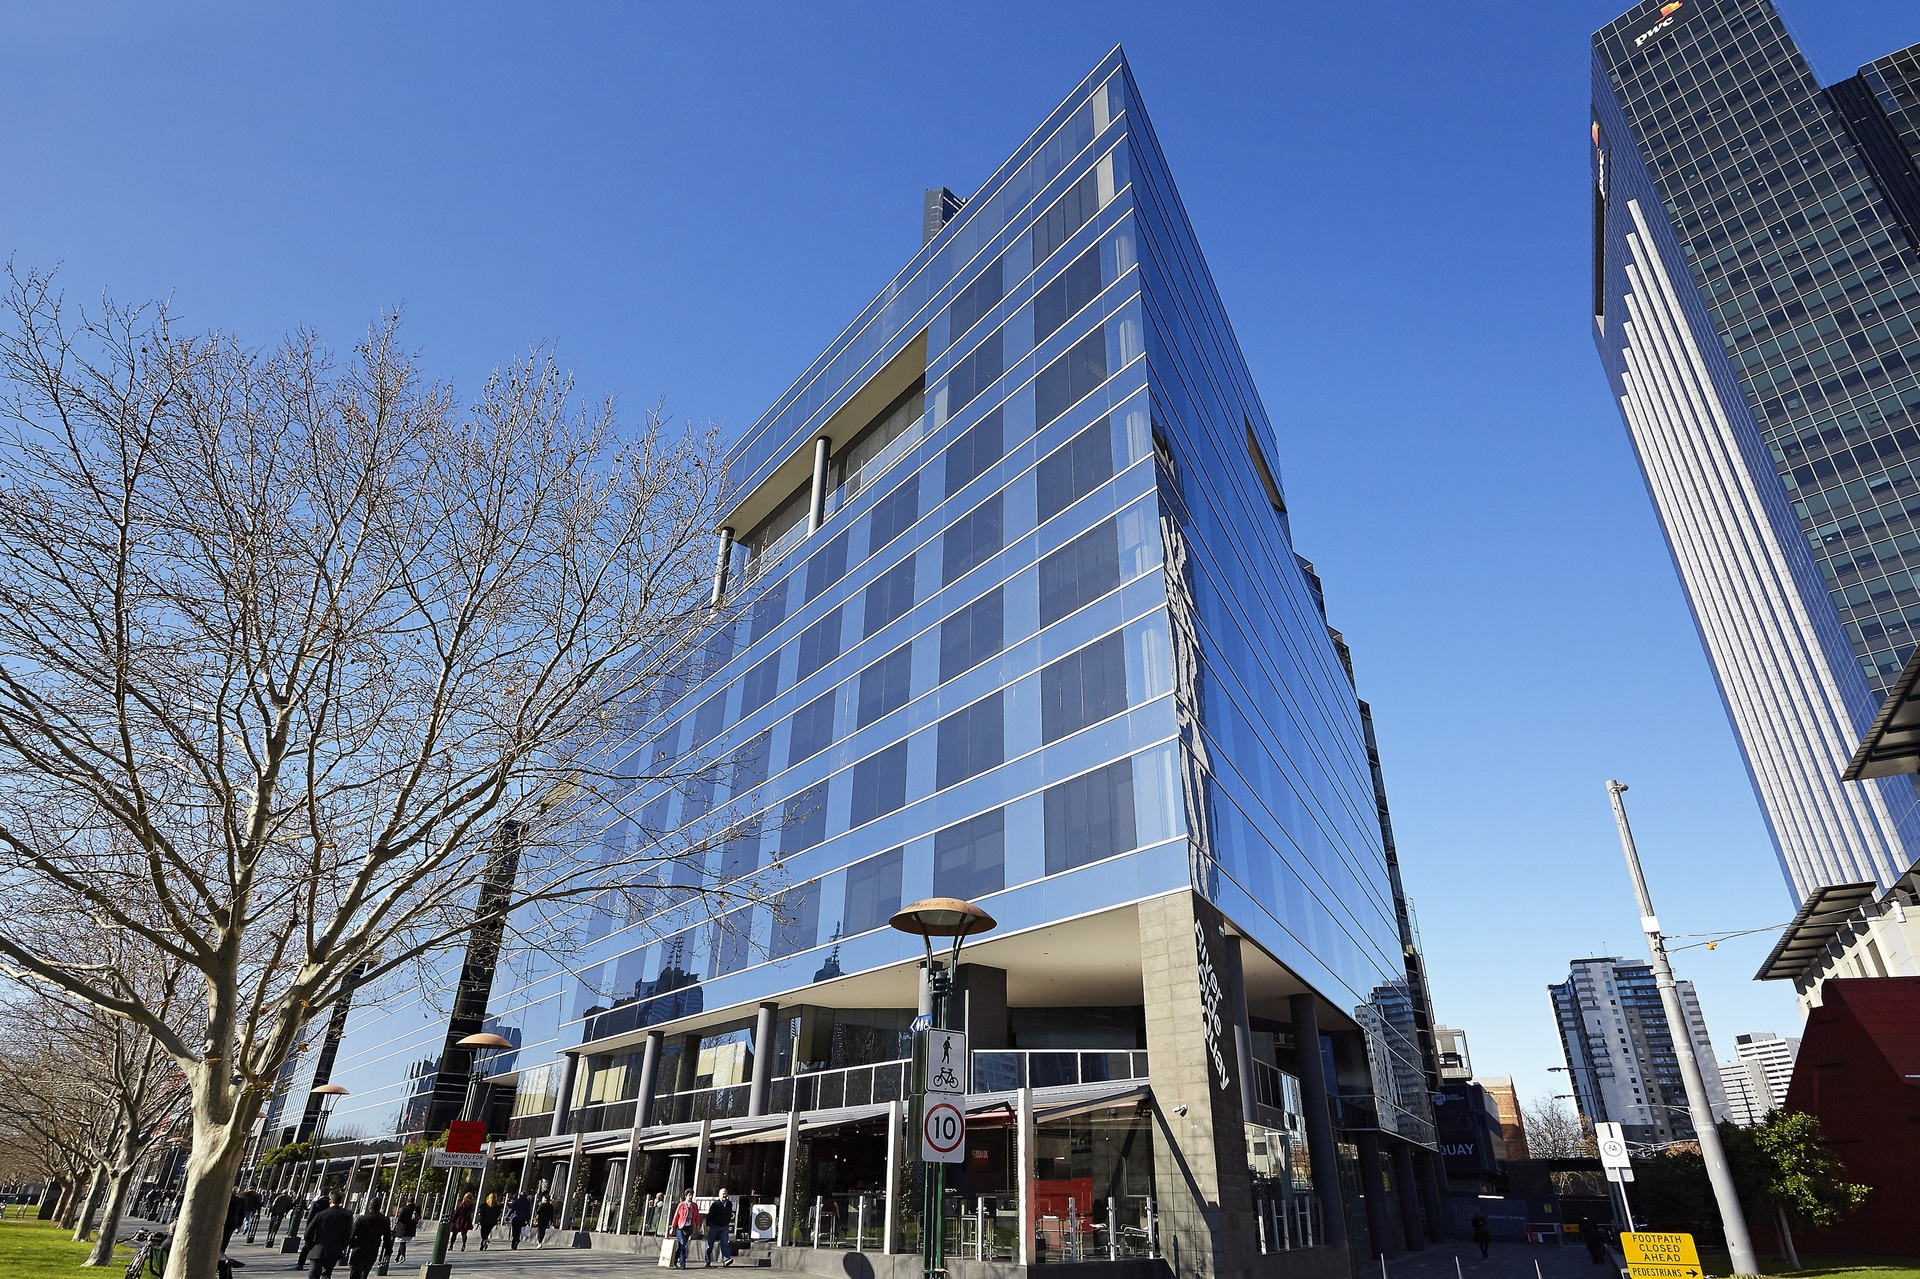 ACT FAST PRIME OFFICES AVAILABLE CLOSE TO WATERFRONT AT RIVERSIDE QUAY WITH AWESOME VIEW